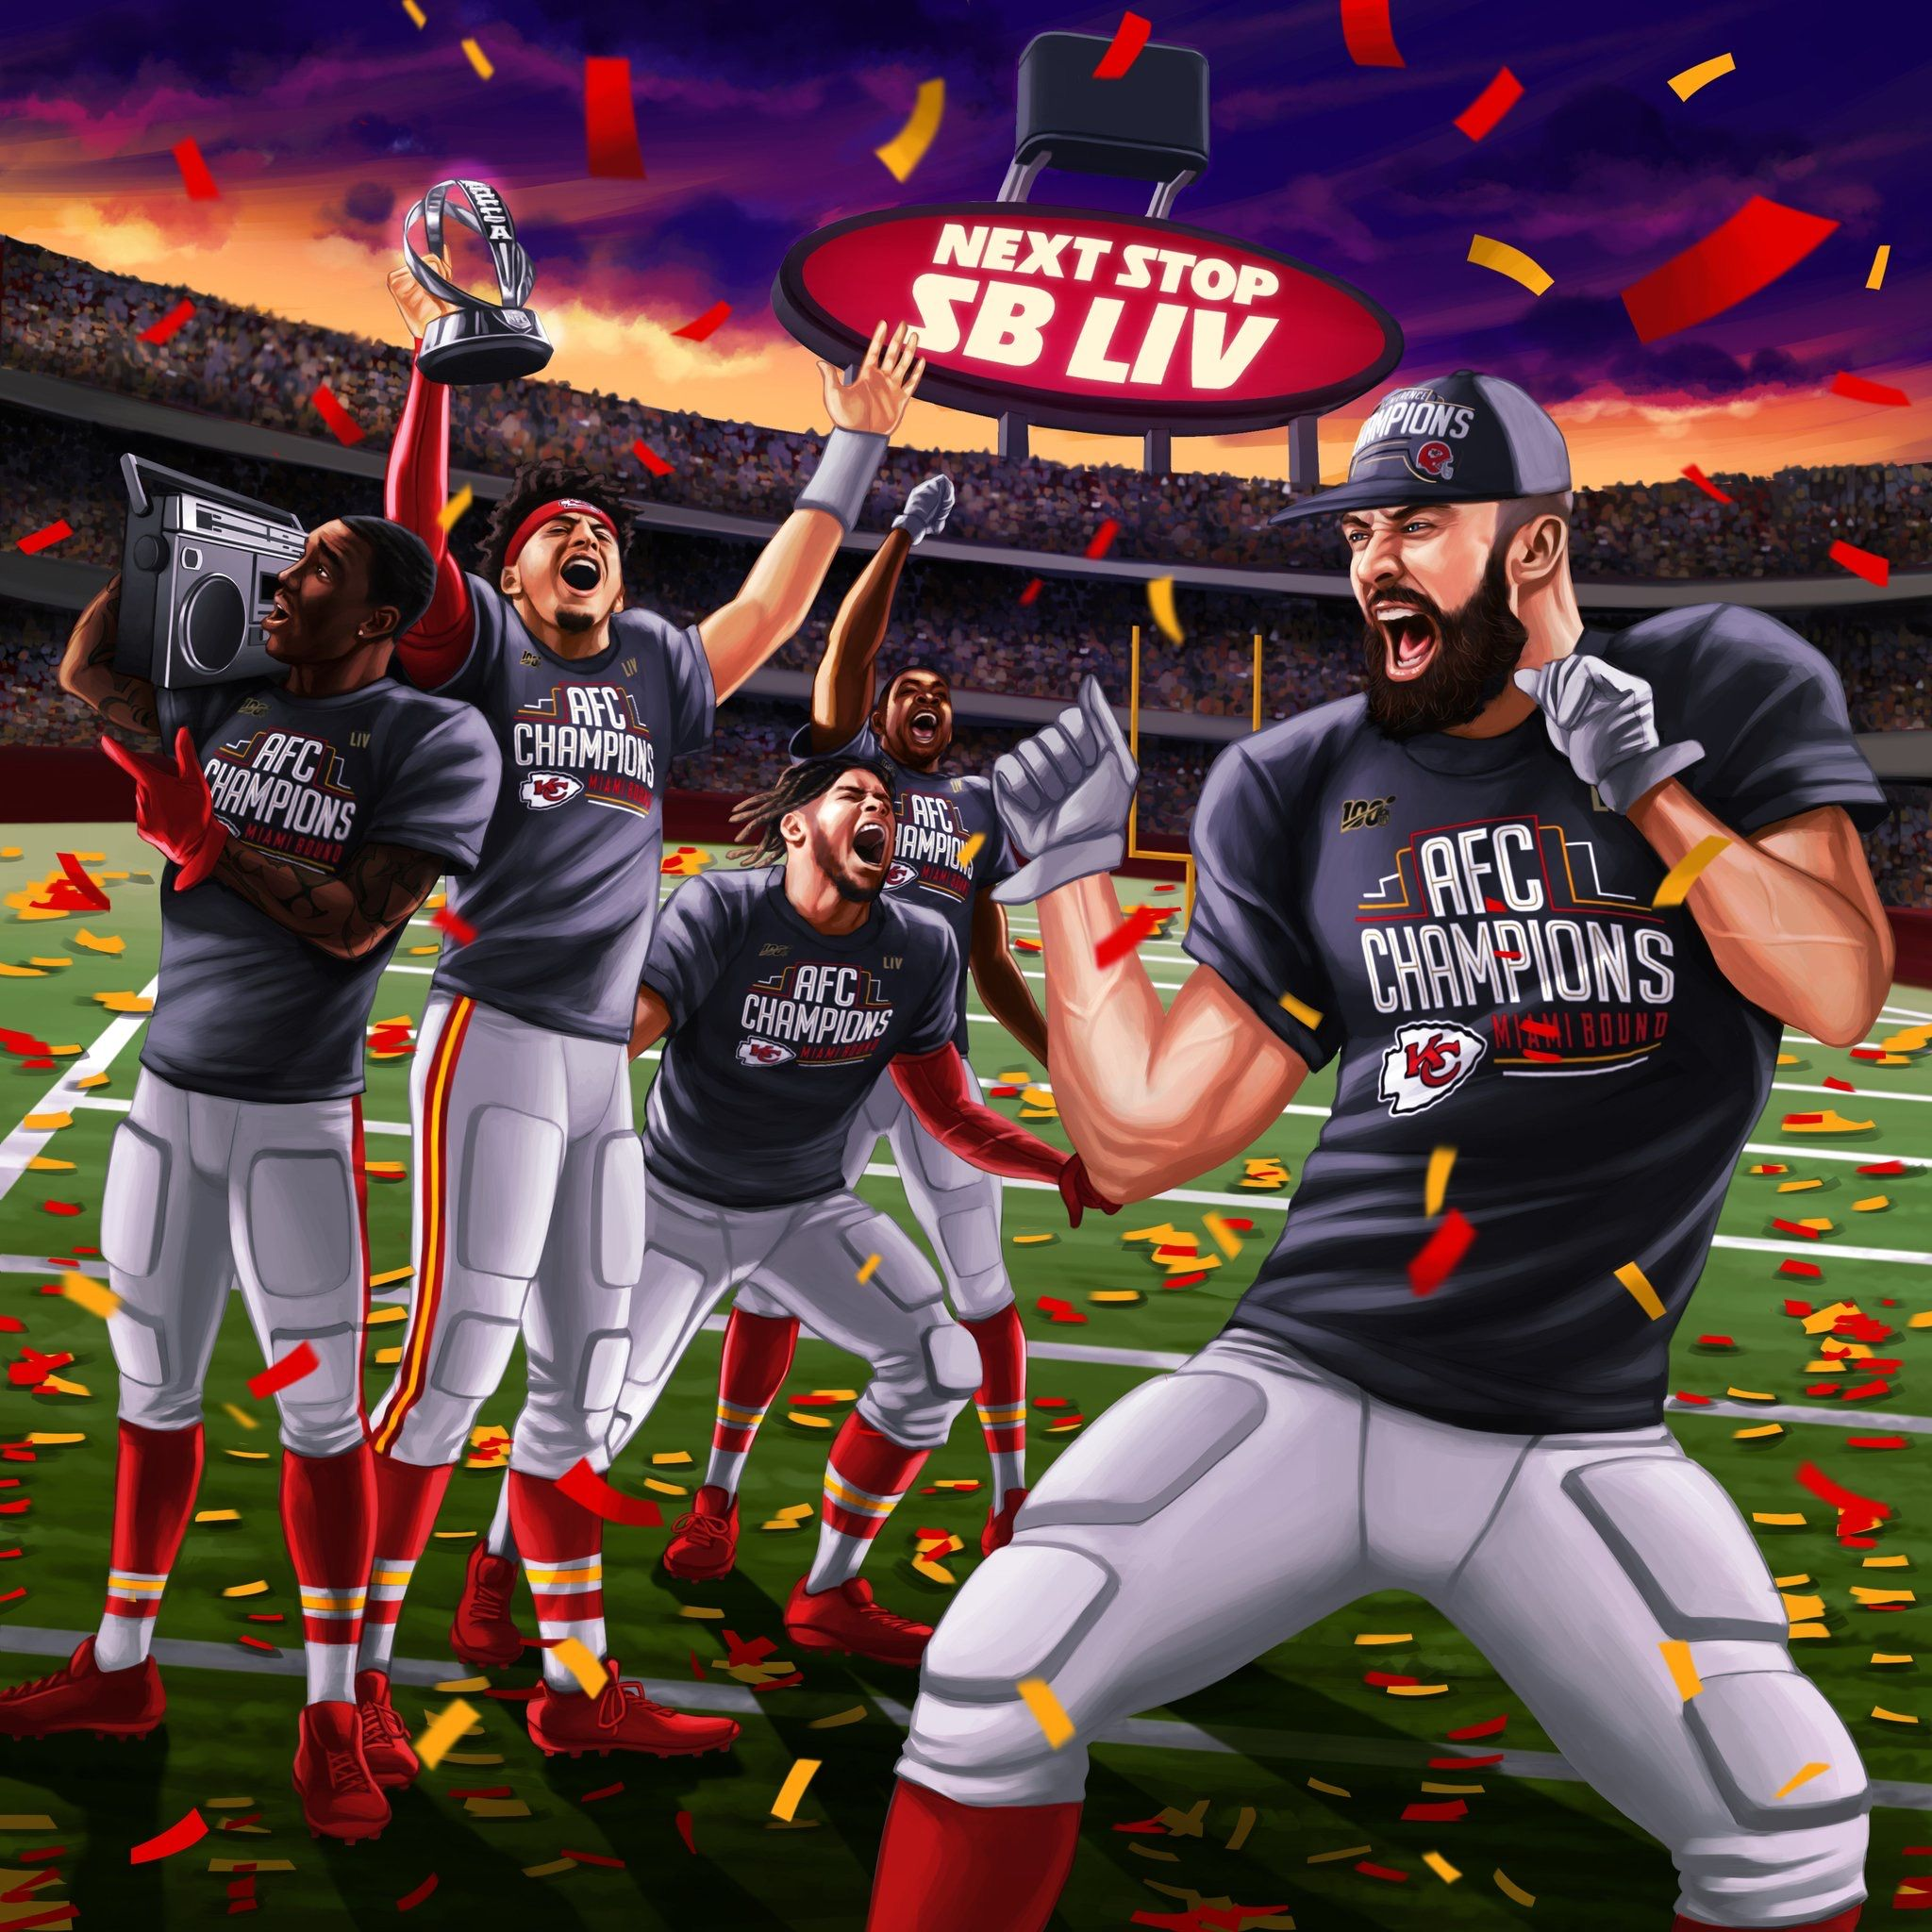 Pin By Kristin Howard On Kc Chiefs  U0026 Royals In 2020